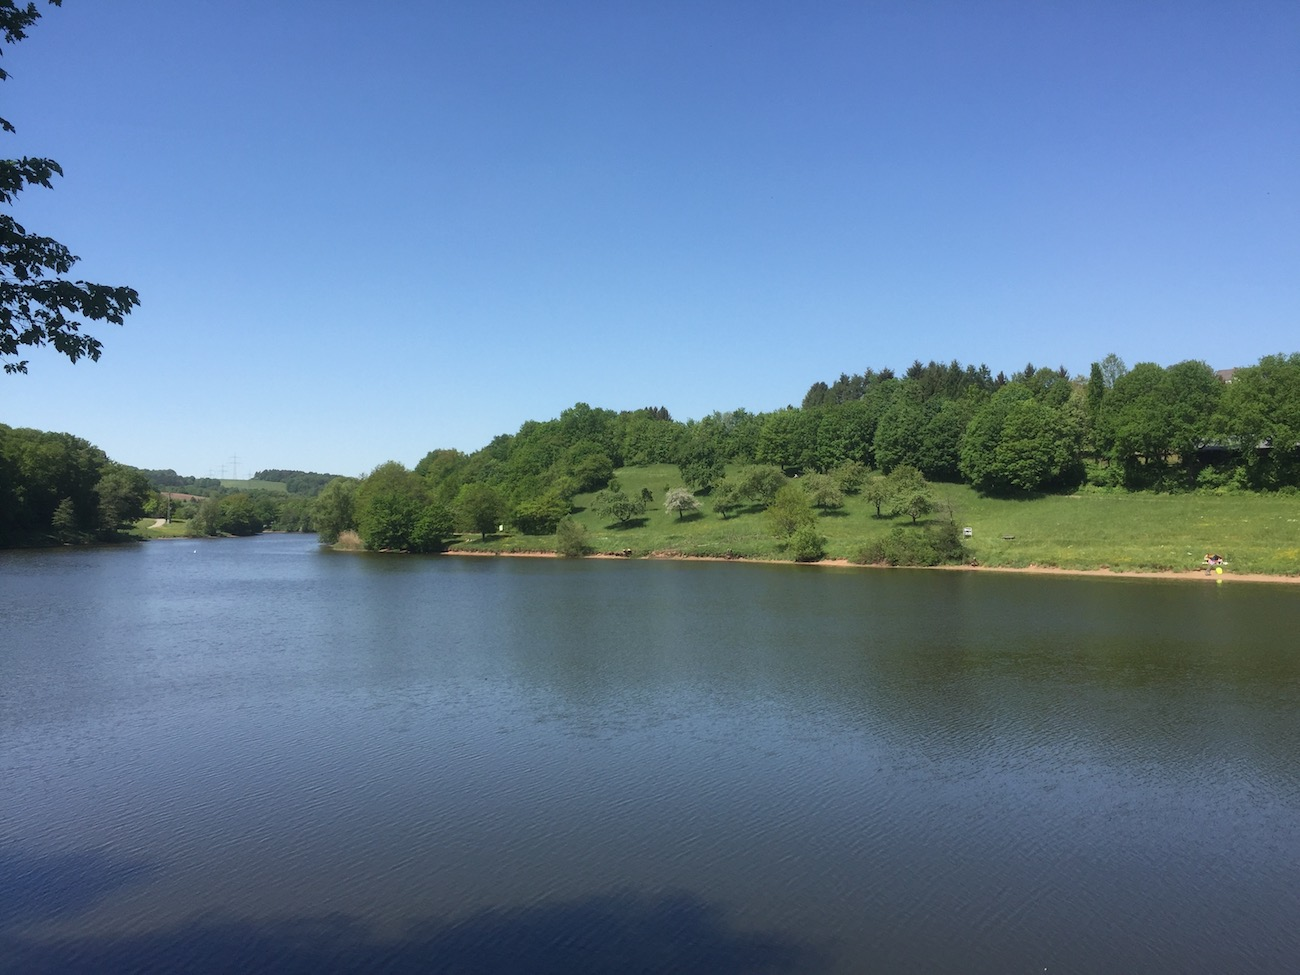 The Ohmbach reservoir